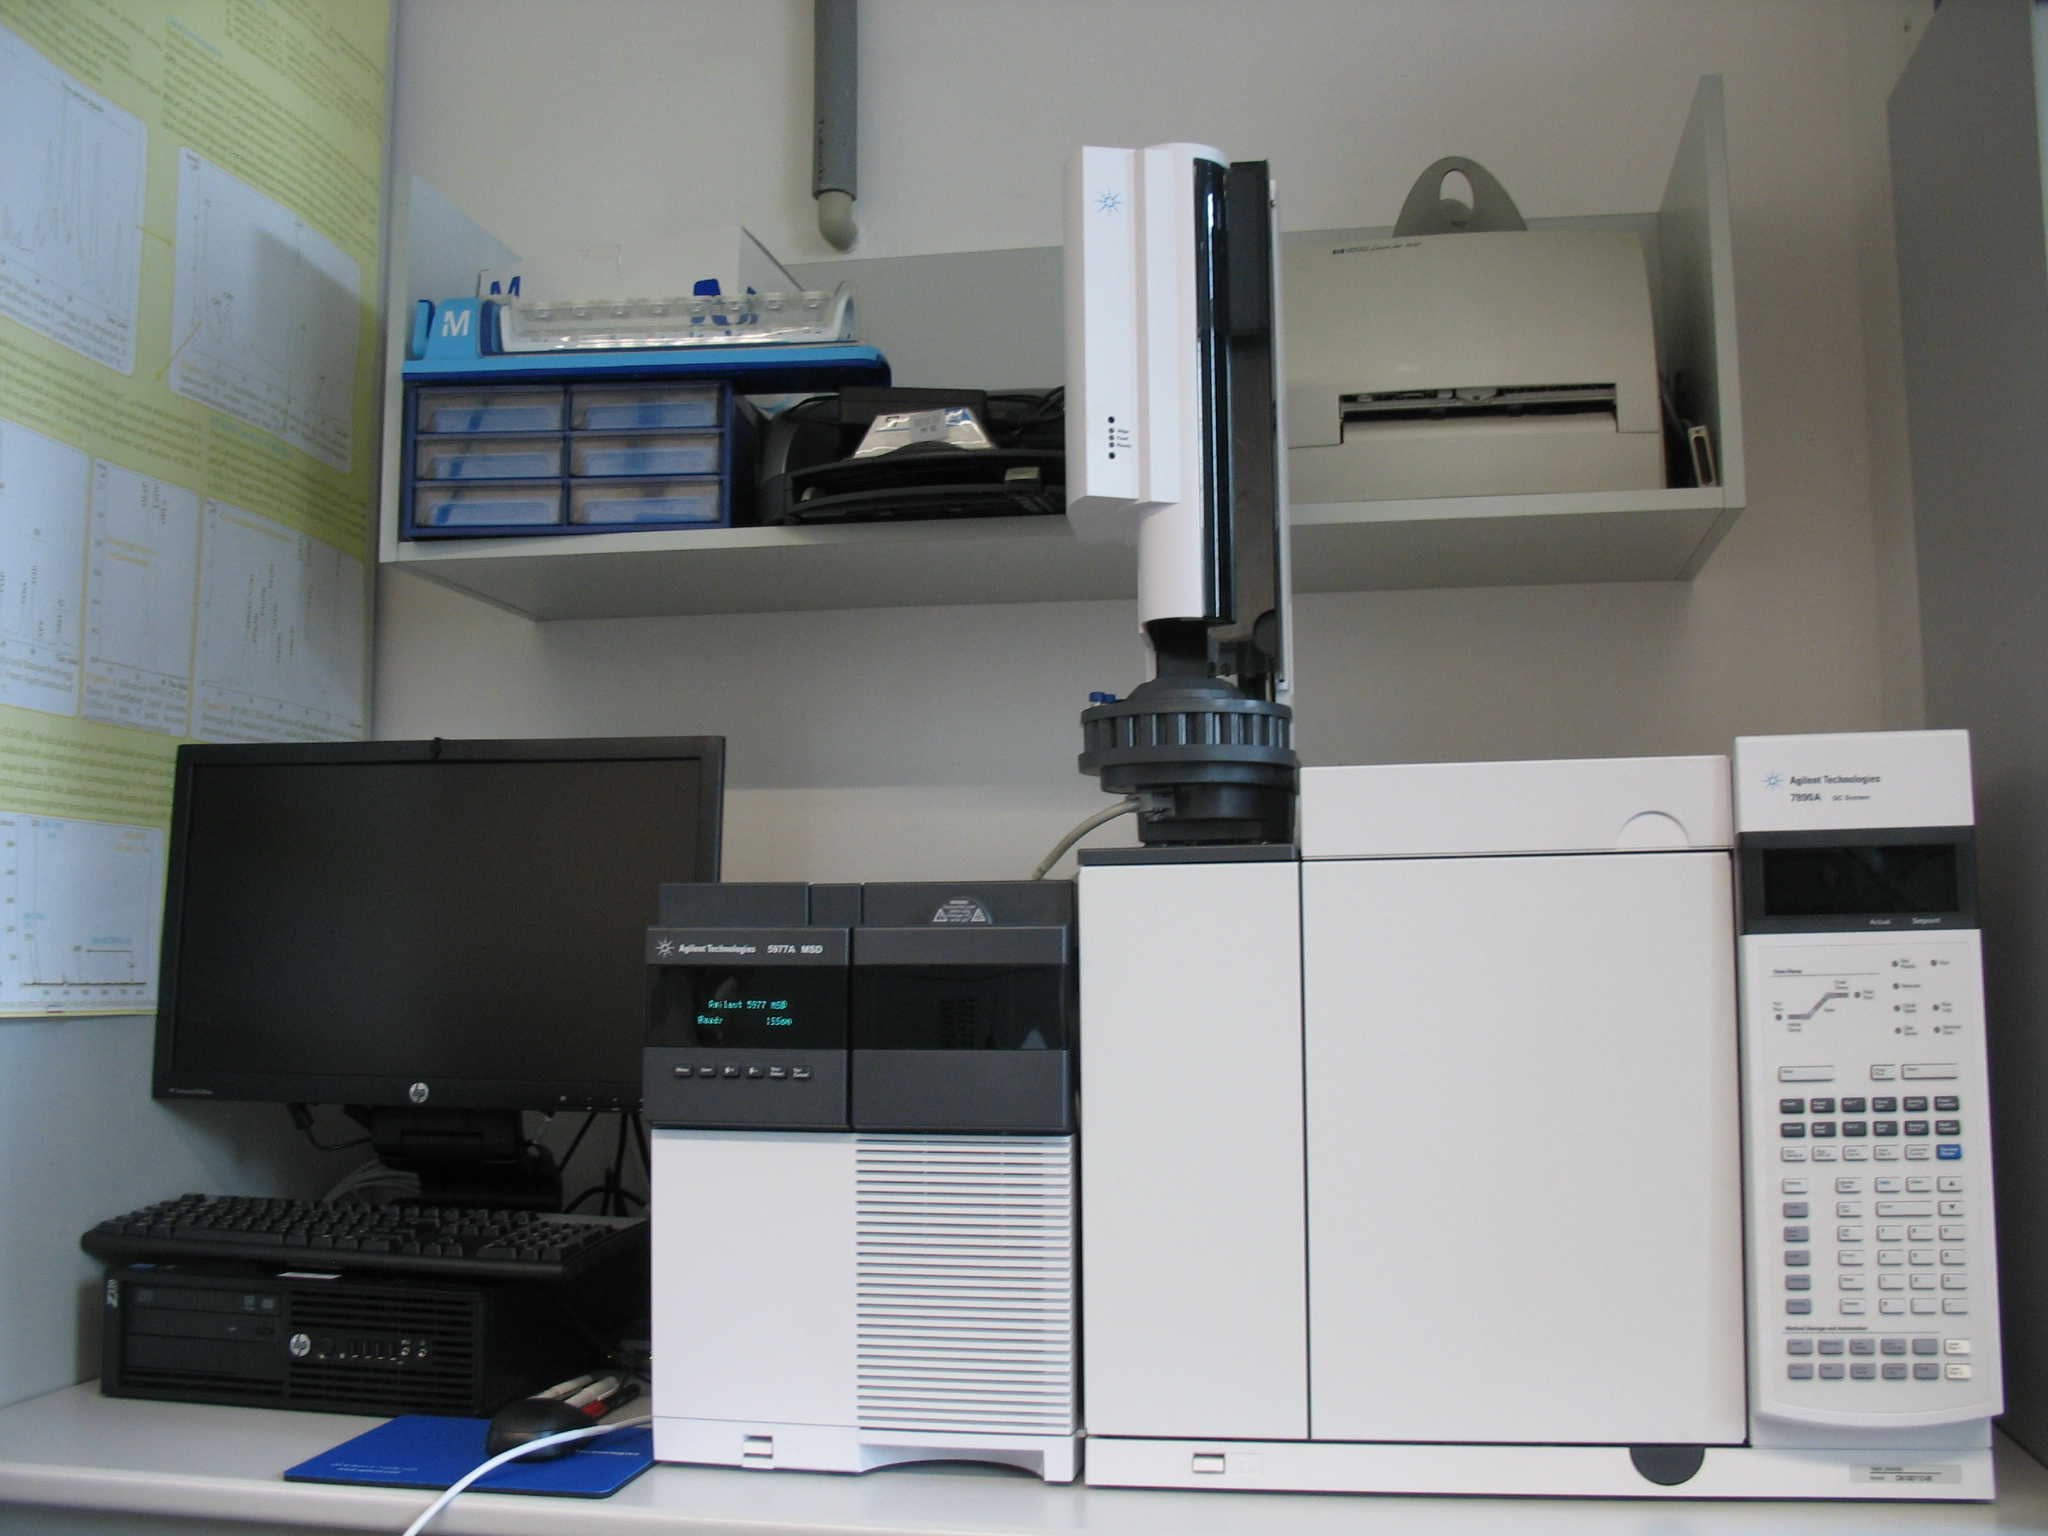 Agilent 5977A Series GC/MSD System